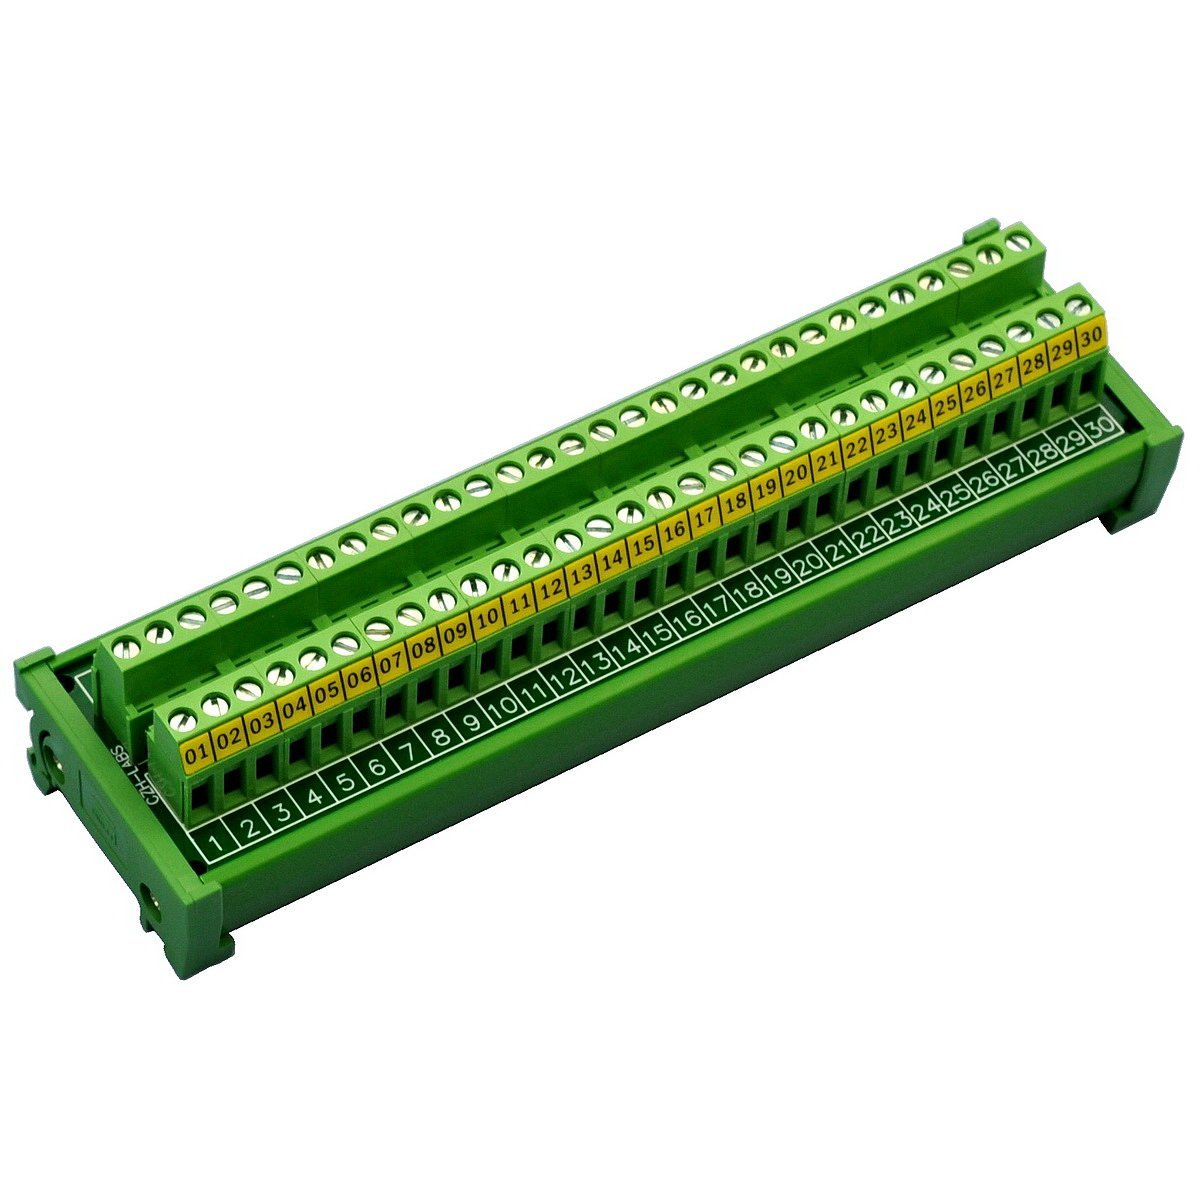 Electronics-Salon DIN Rail Mount 30 Position 24A / 400V Screw Terminal Block Distribution Module.